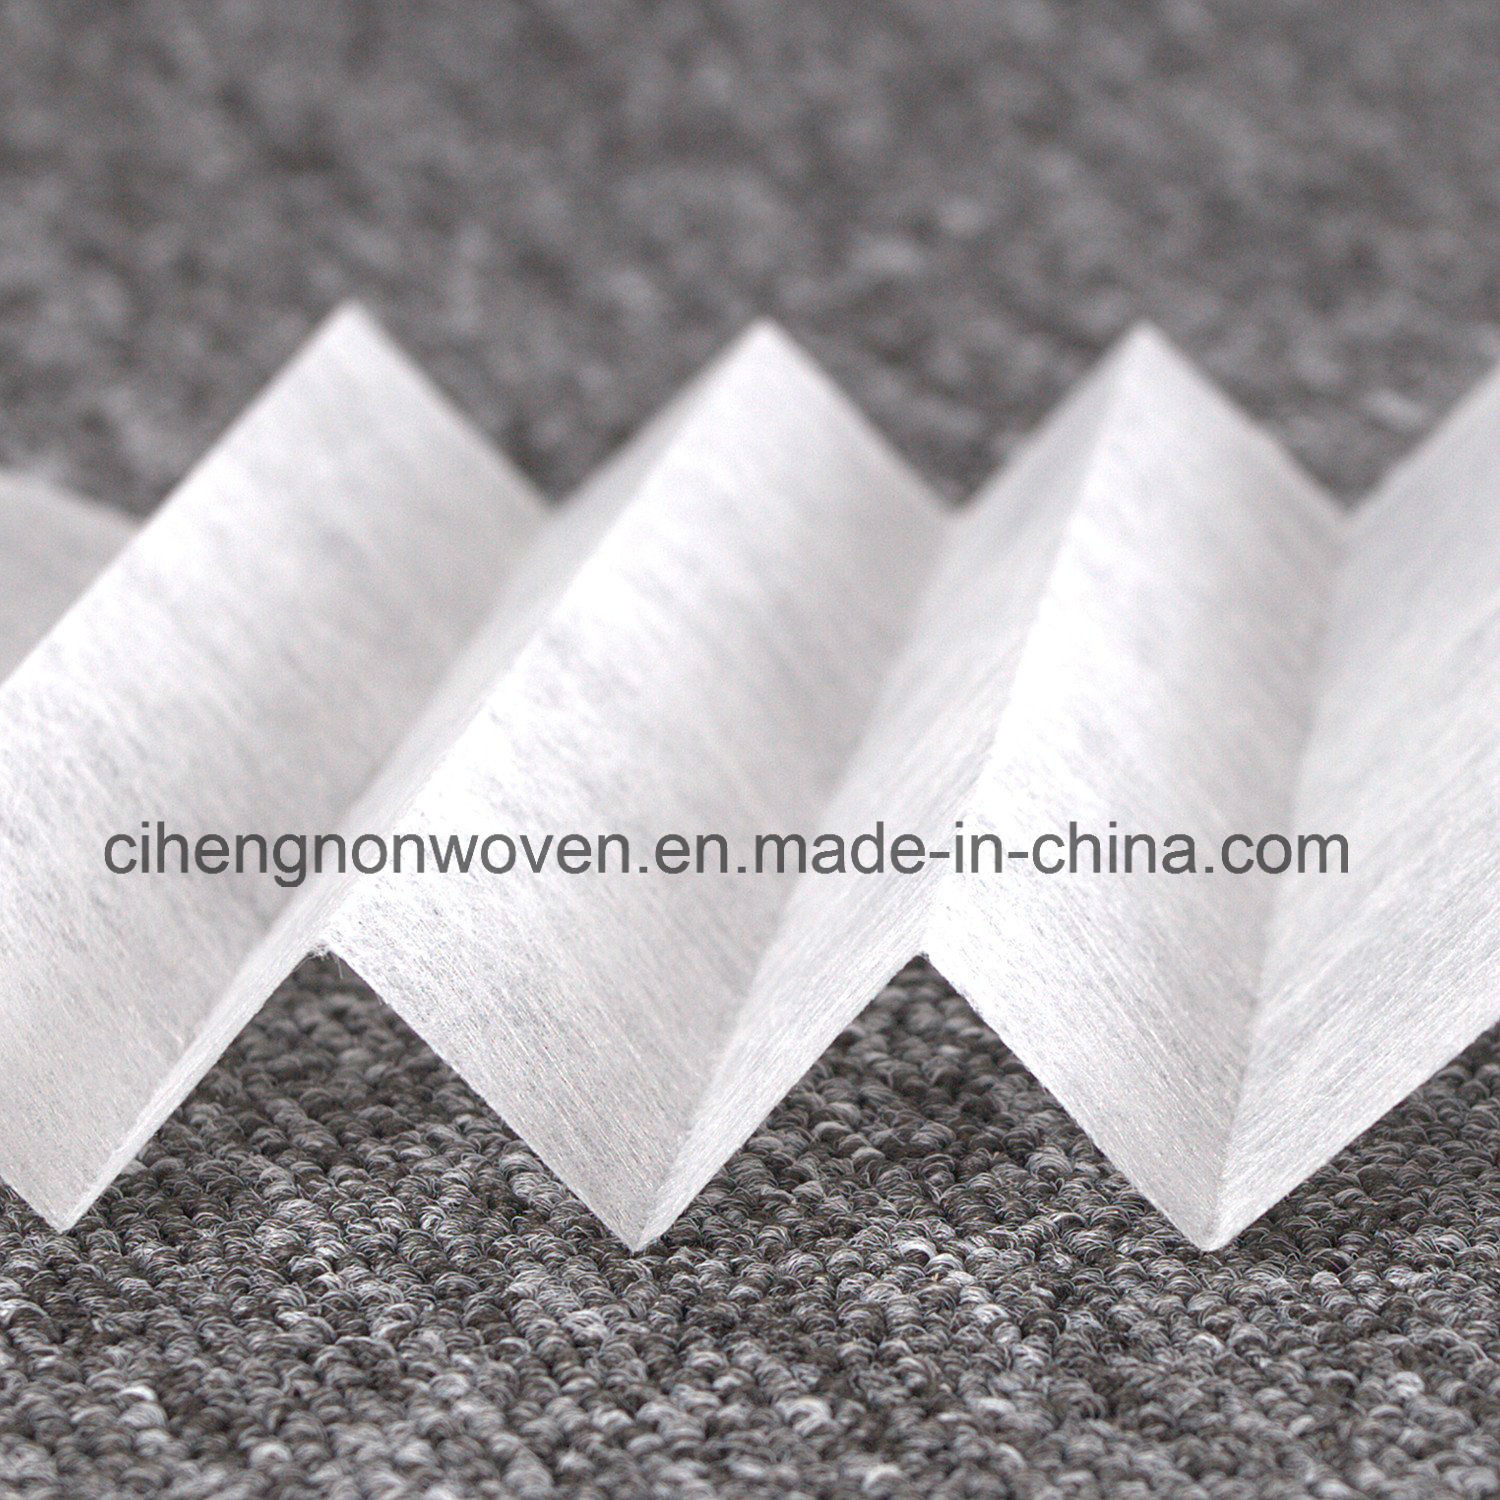 Filter Media Polyester Backbone Material Pet Filament Nonwoven Fabric